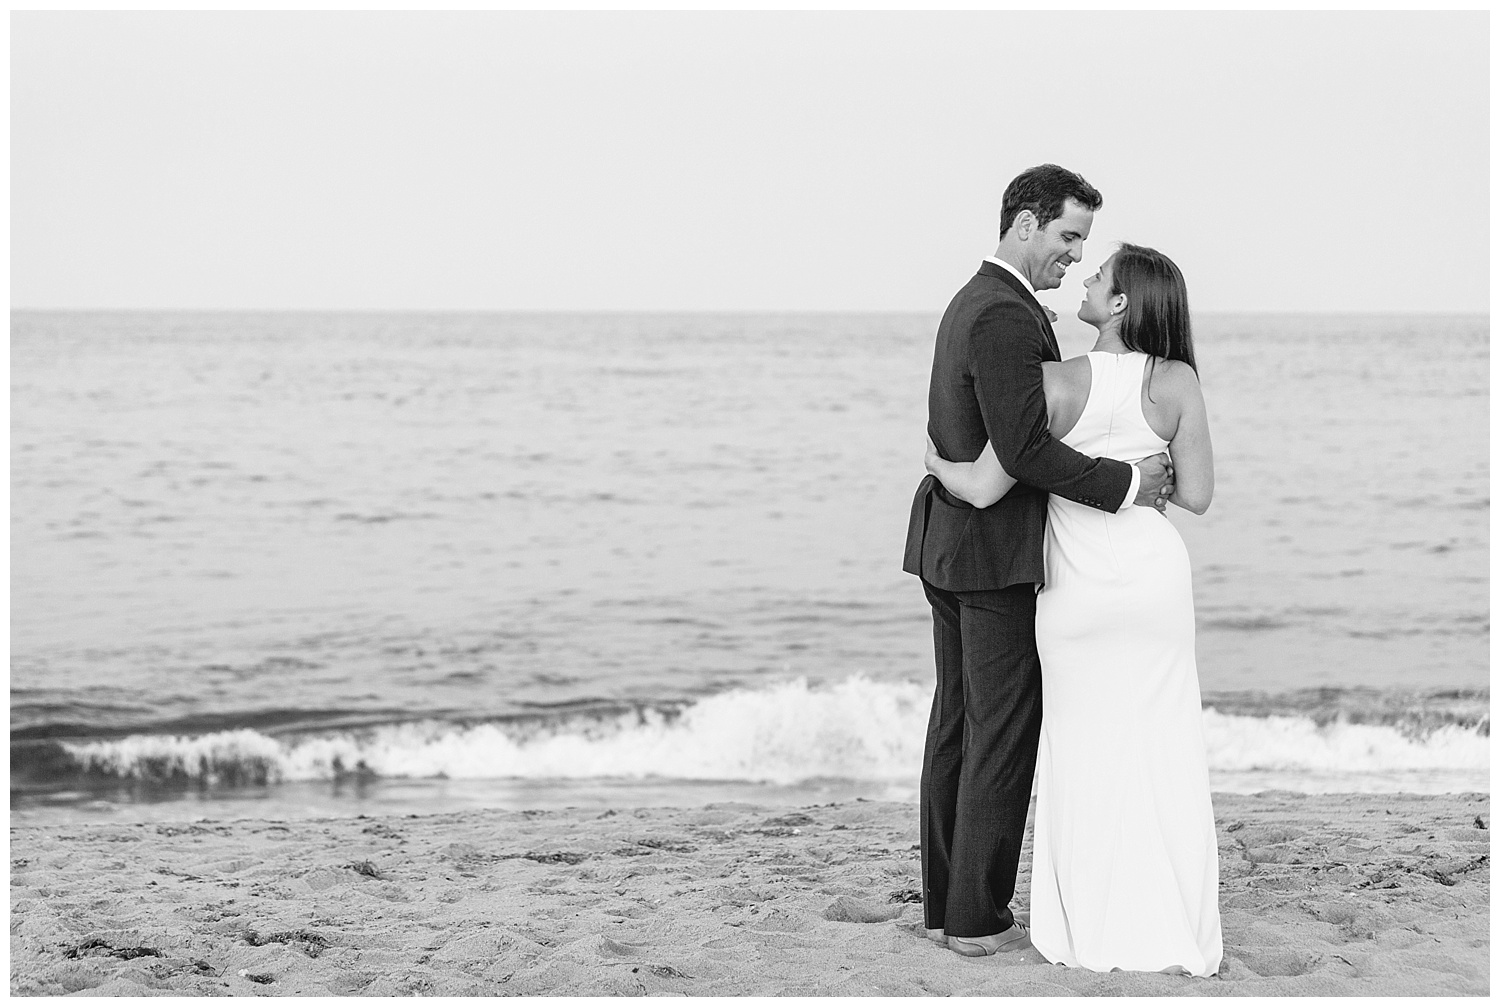 emily-belson-photography-nantucket-elopement-59.jpg